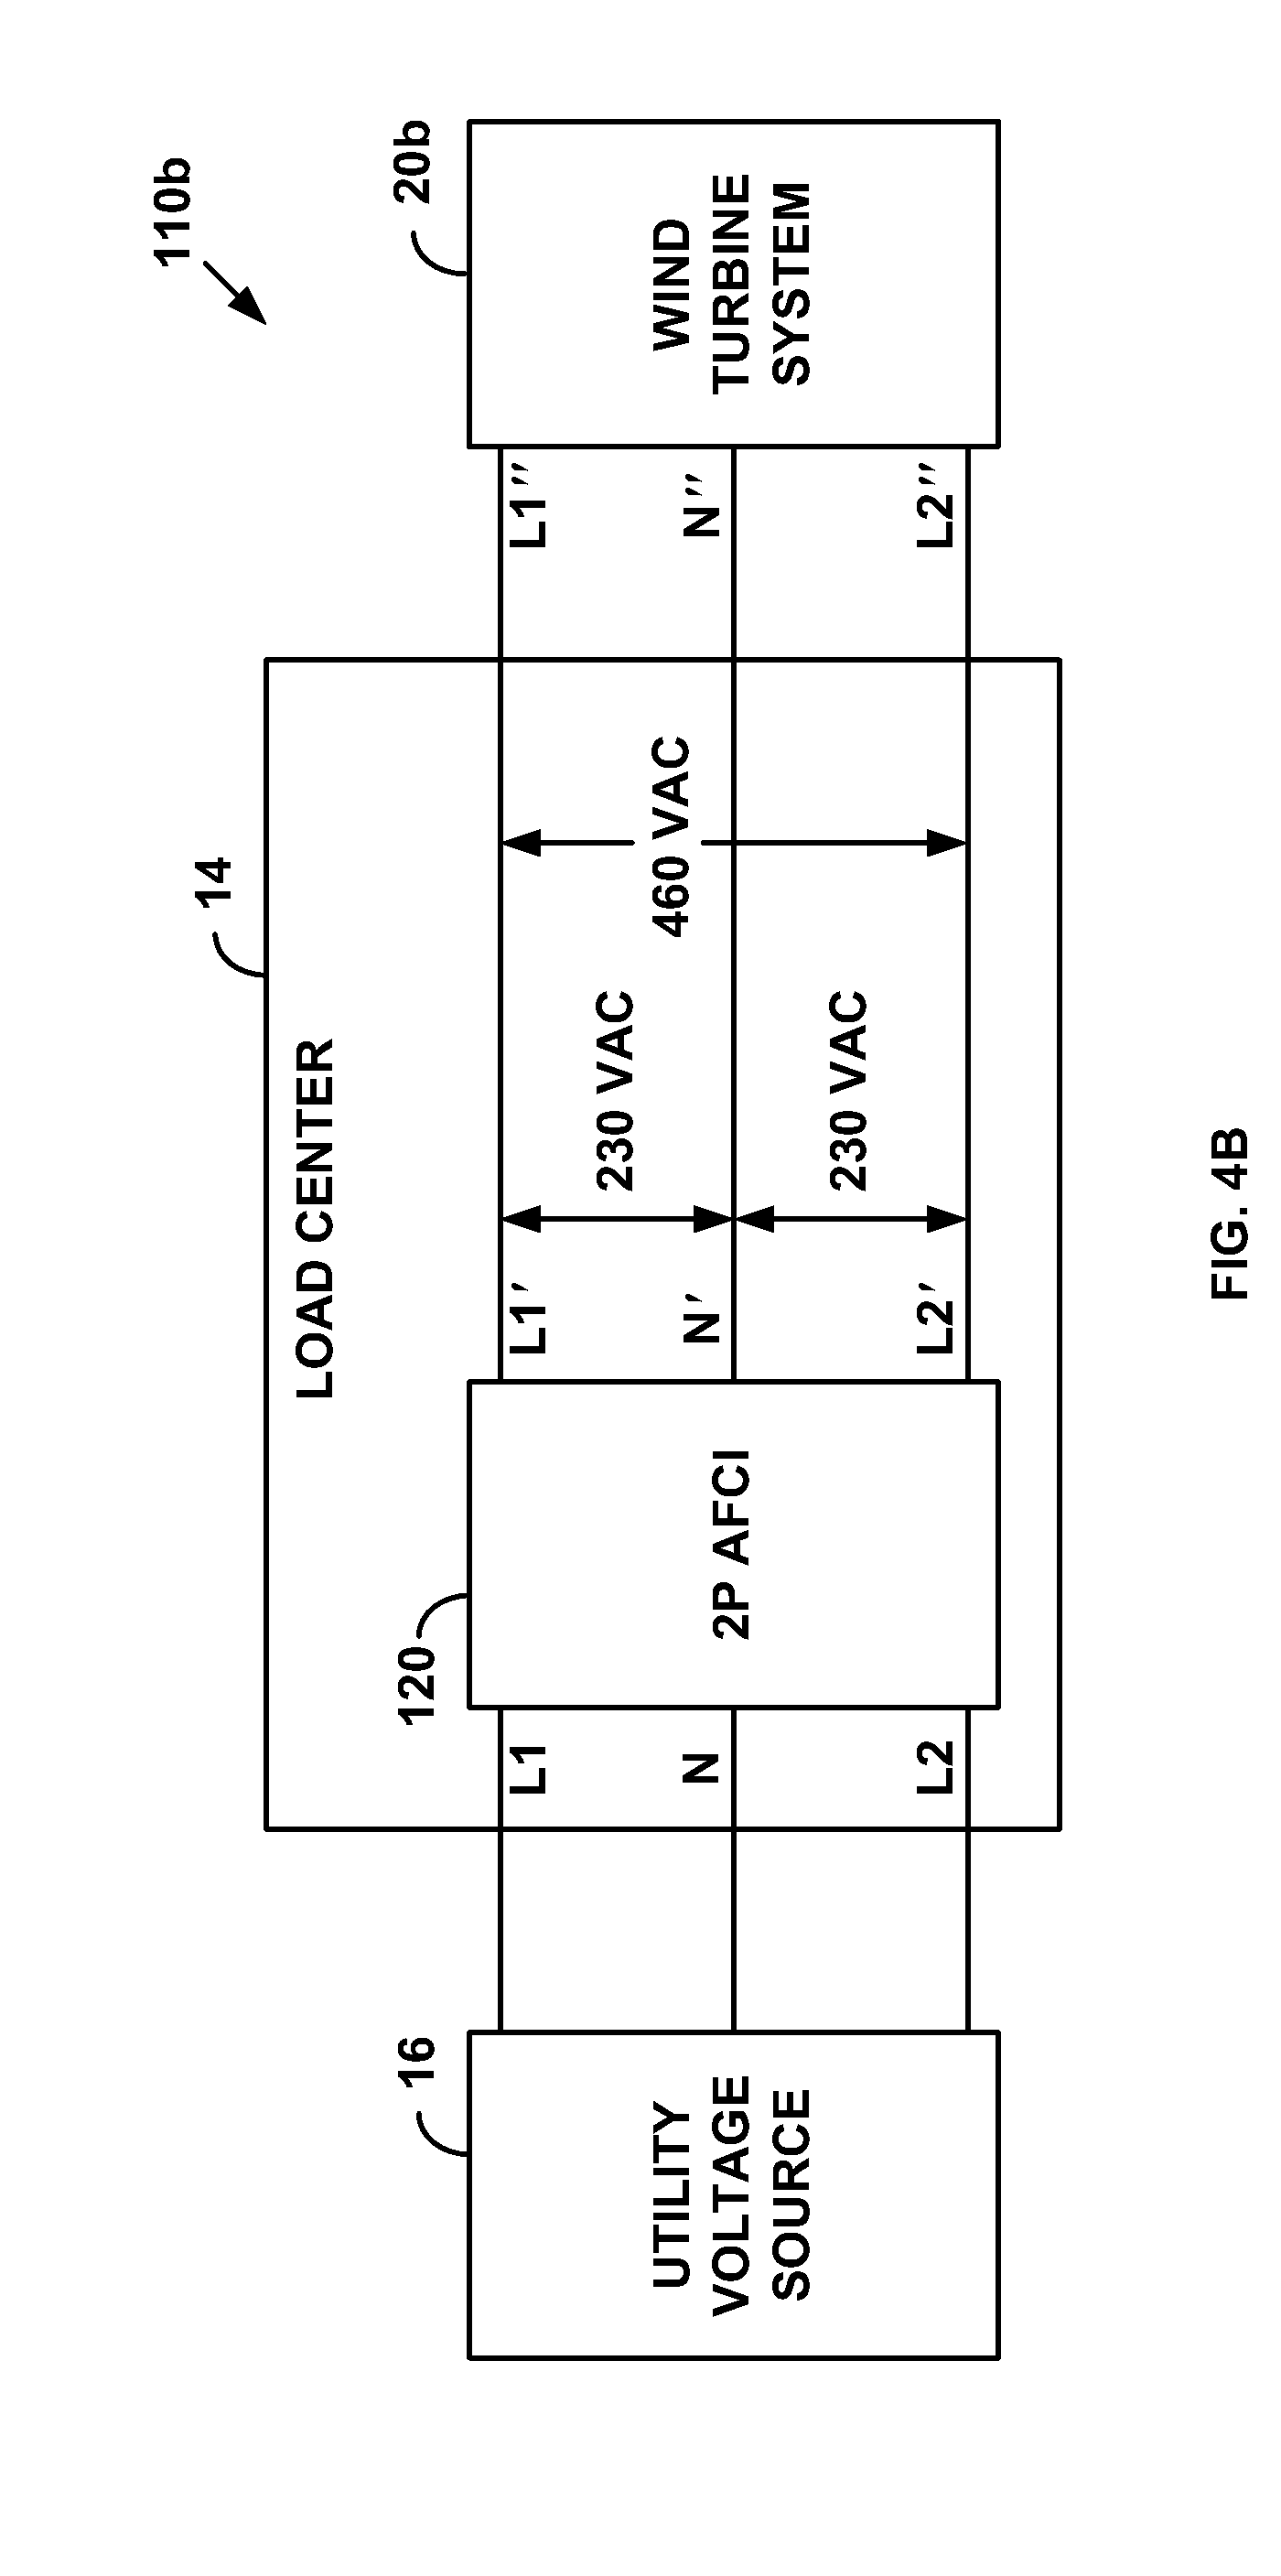 Afci Wiring Methods Diagrams Outlet Diagram Patent Us20120019966 Systems And For Providing Tester